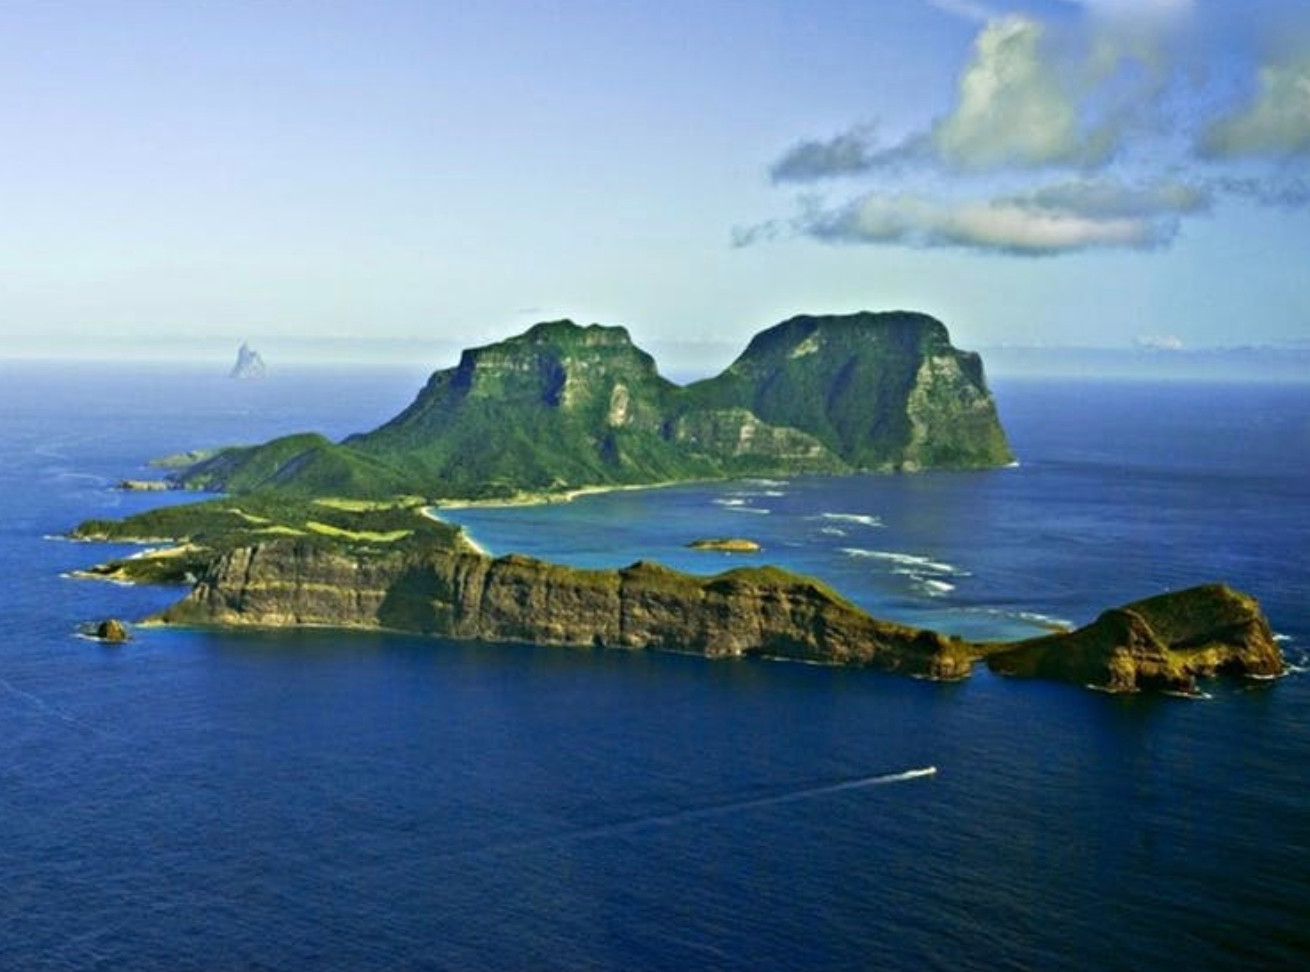 Lord Howe from afar